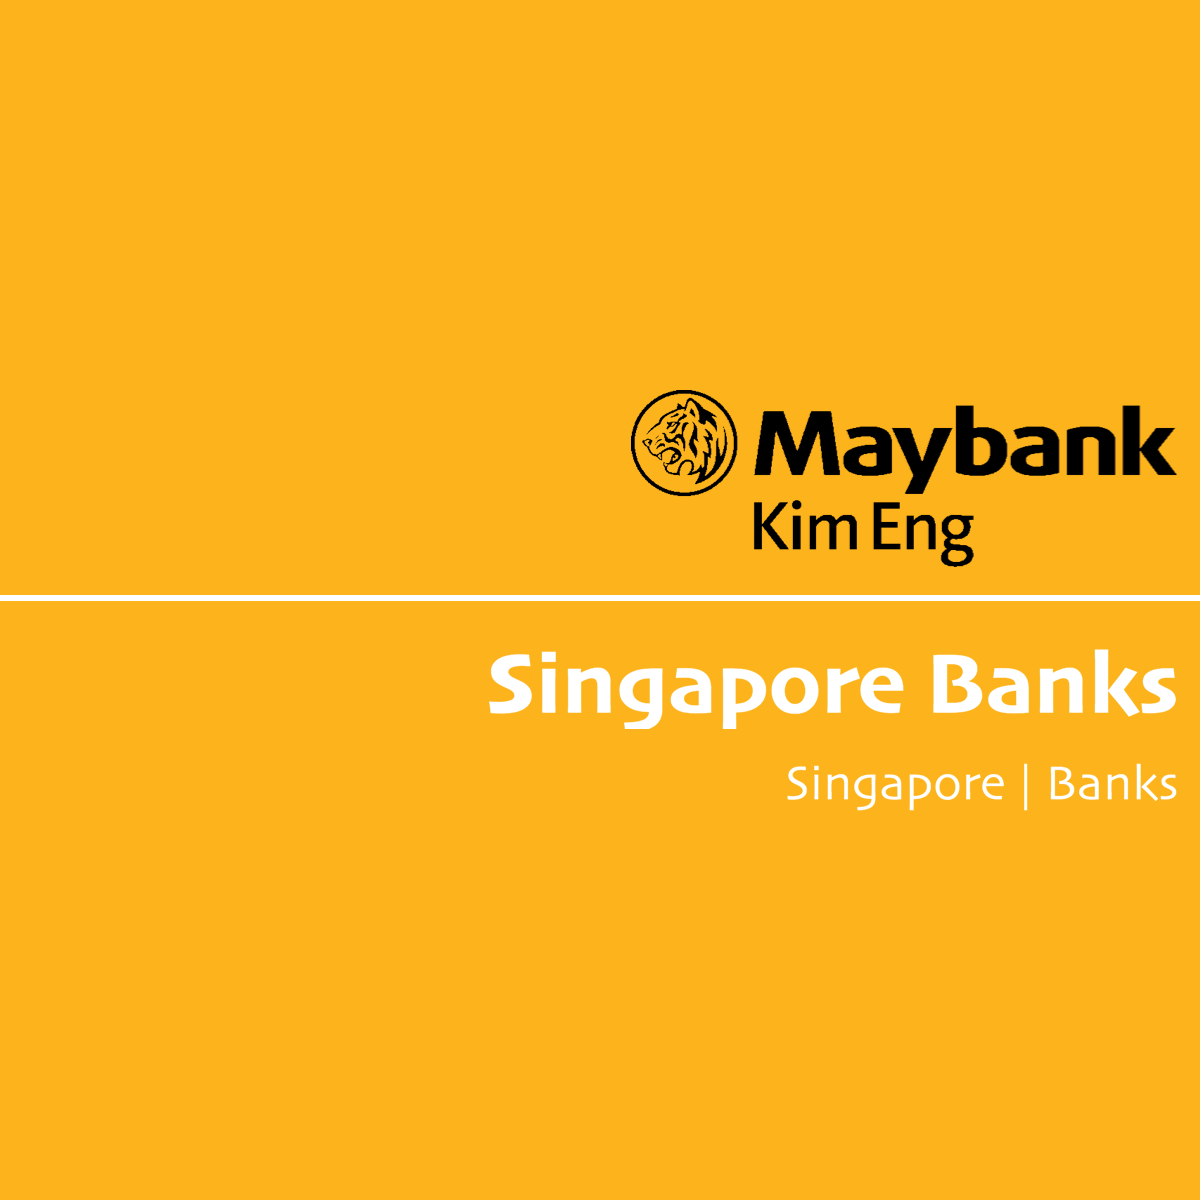 Singapore Banks - Maybank Kim Eng Research | SGinvestors.io